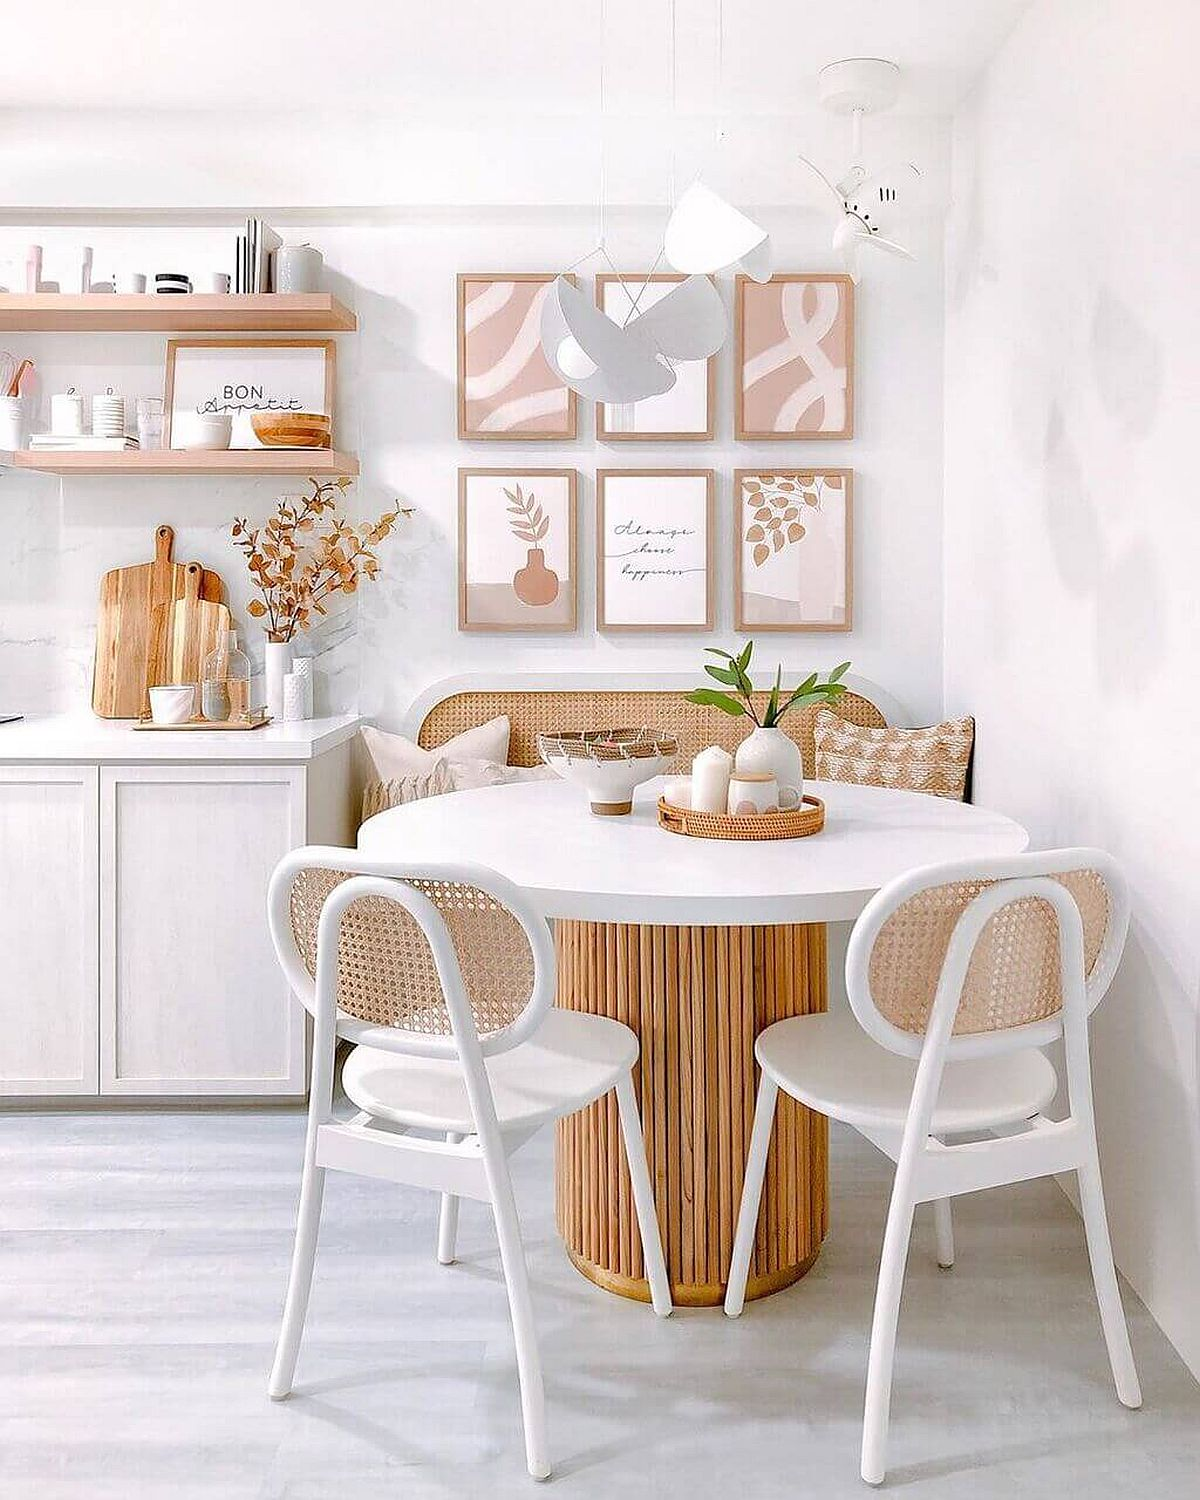 Picture-perfect white and wood dining room with a round dining table and pastel accents